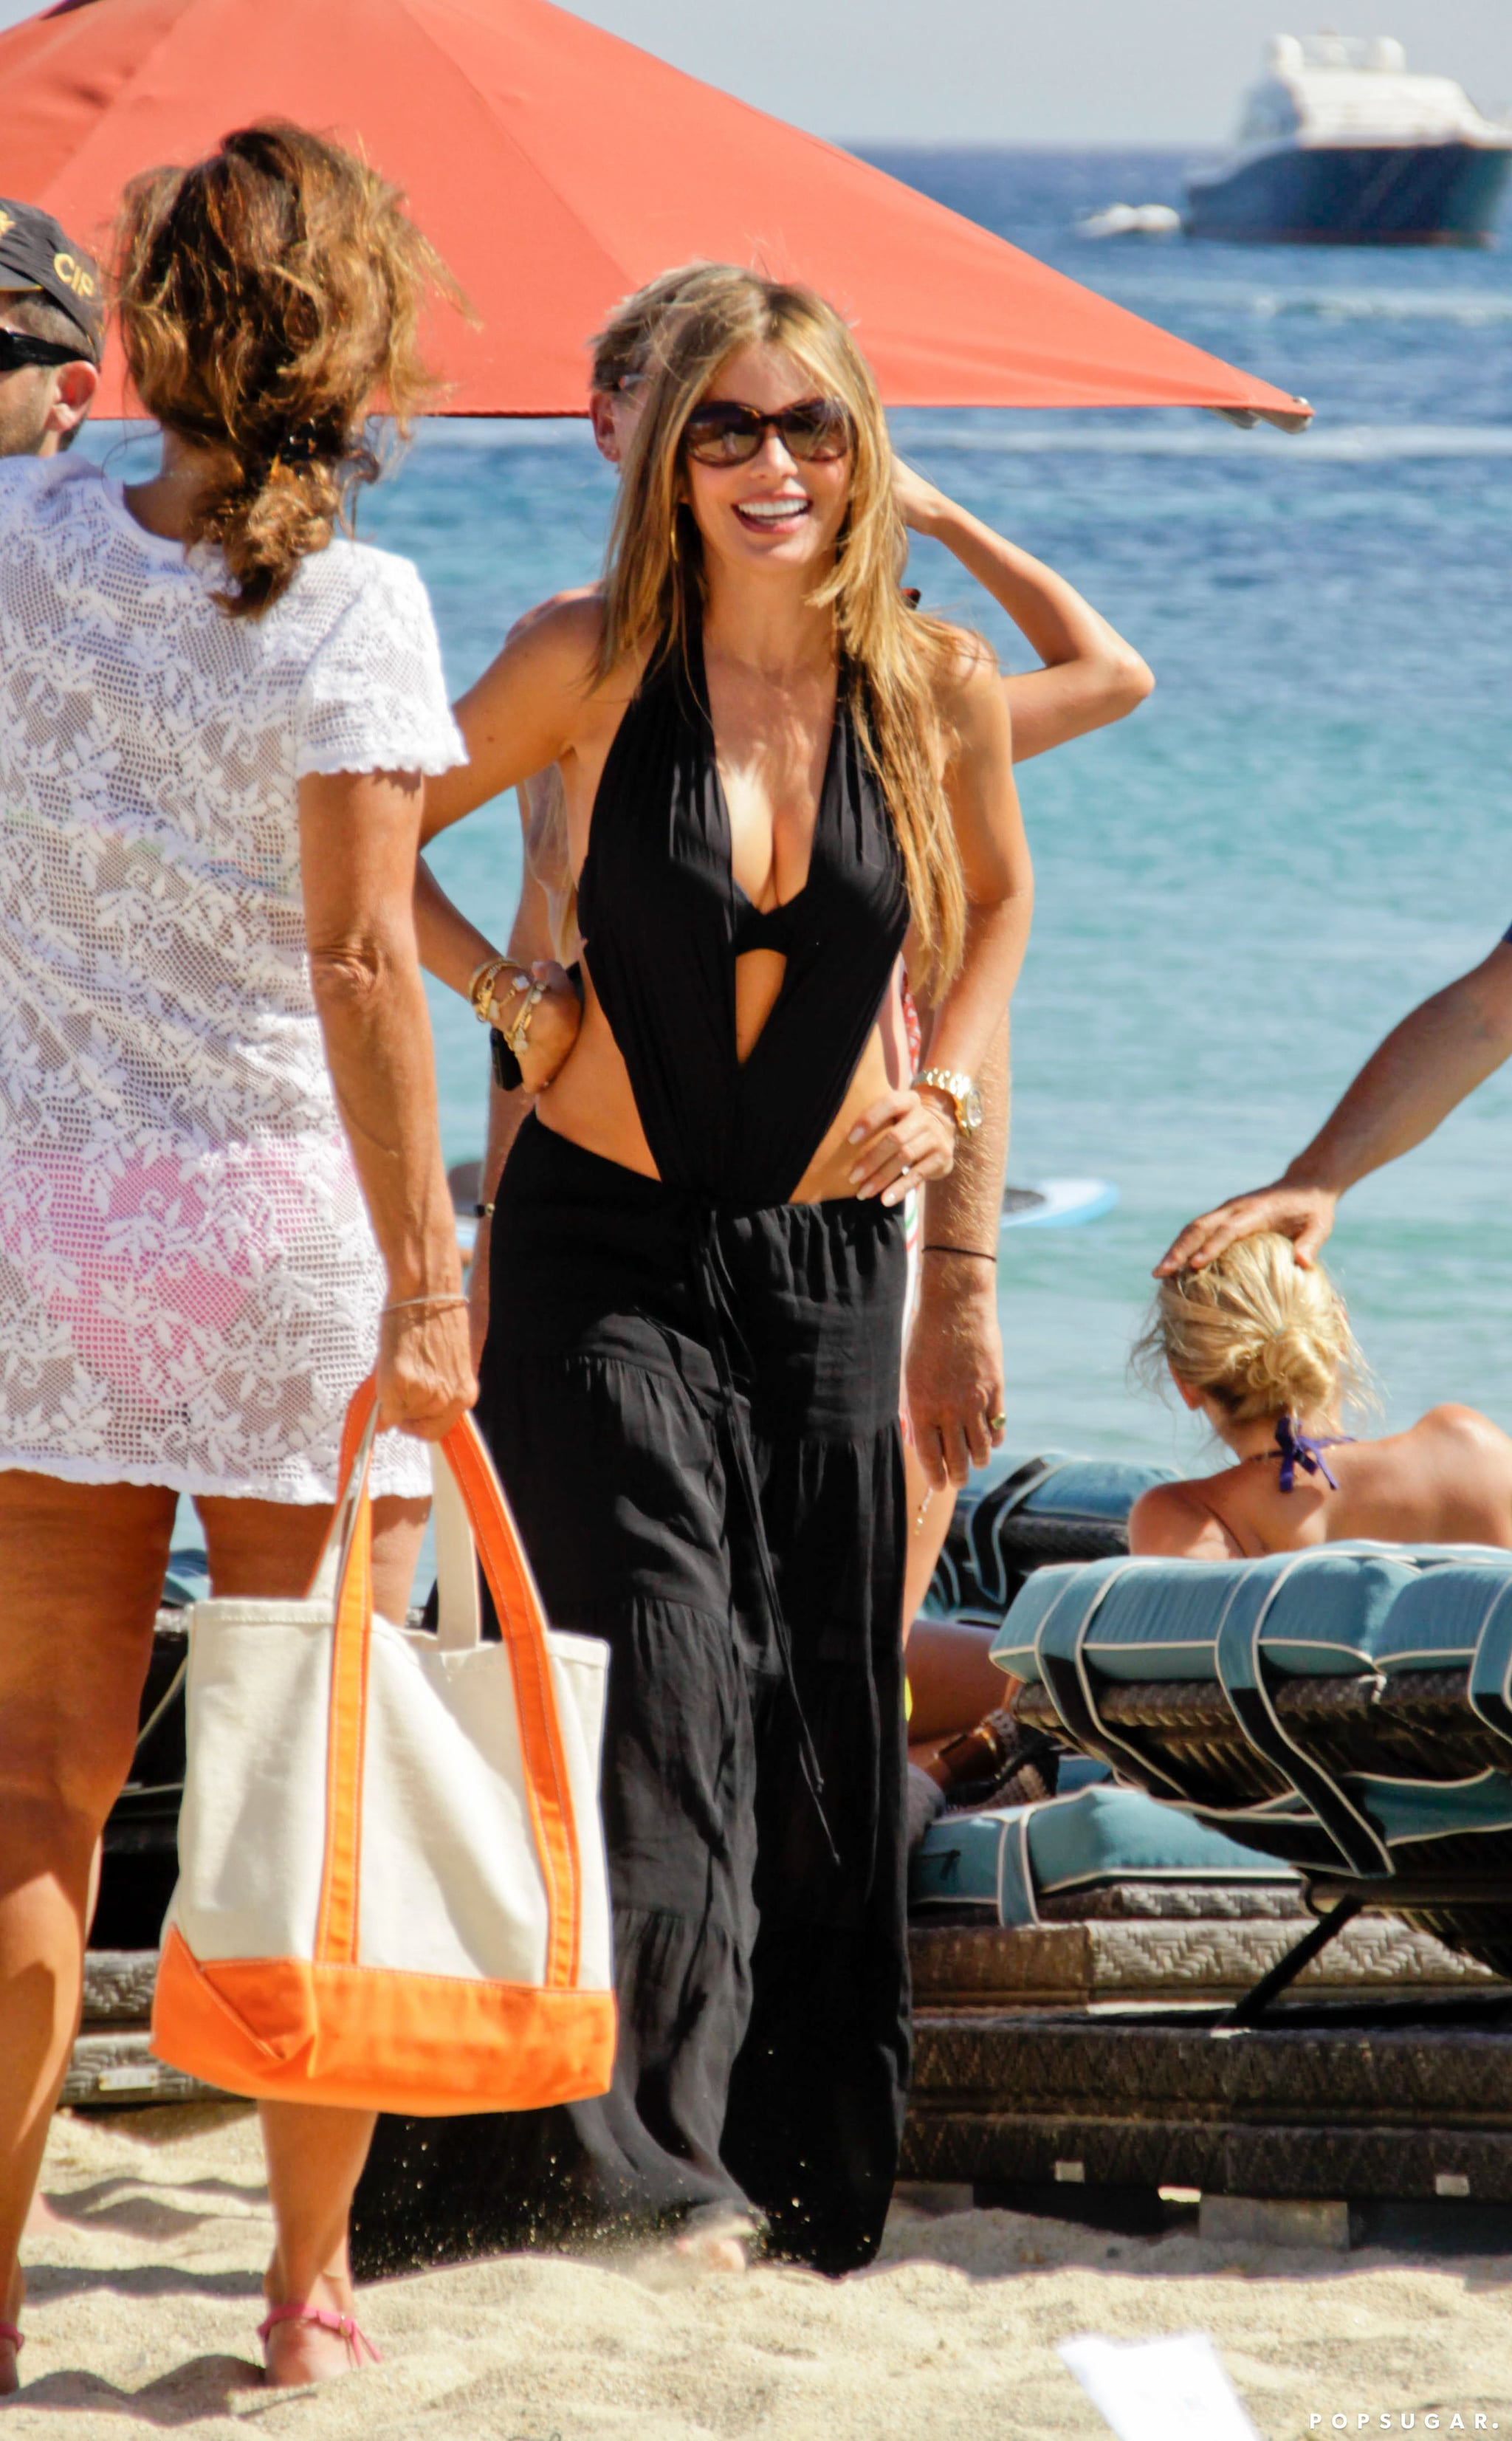 Sofia Vergara hit the beach in Mykonos while wearing a maxi skirt in July 2013.